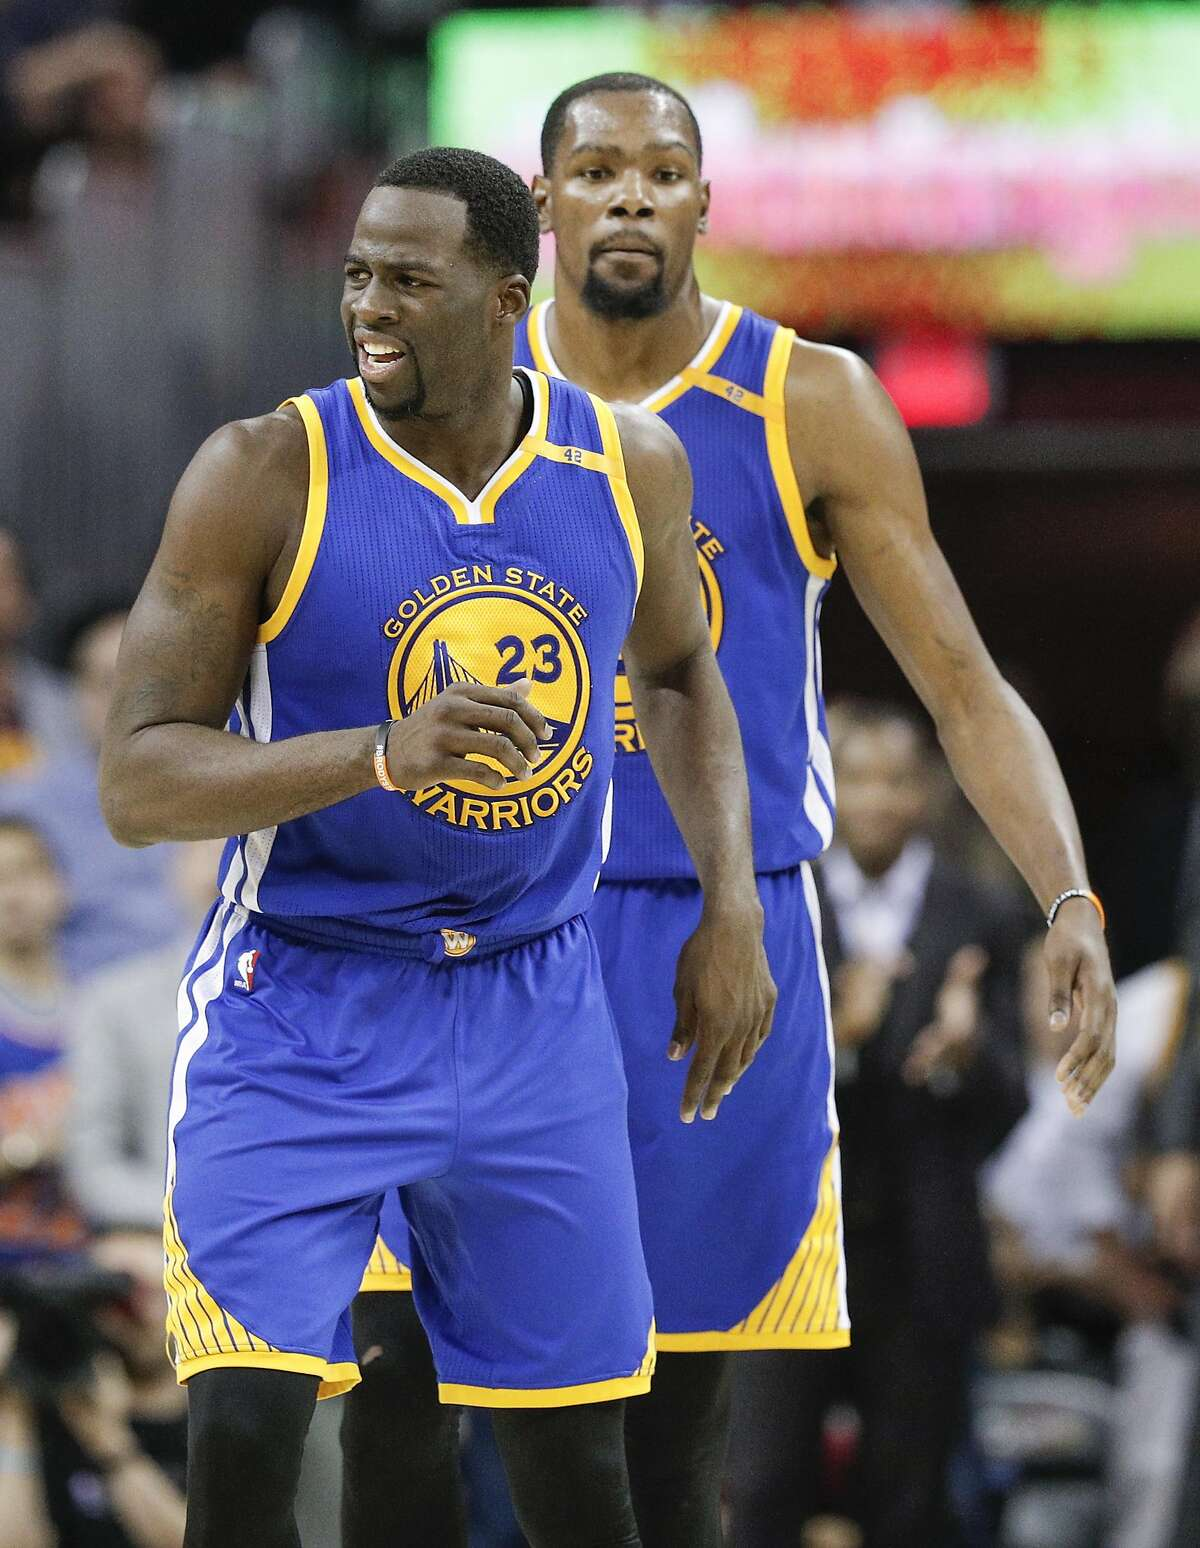 Golden State Warriors' Kevin Durant reacts to a call in the second quarter during Game 3 of the 2017 NBA Finals at Quicken Loans Arena on Wednesday, June 7, 2017 in Cleveland, Ohio